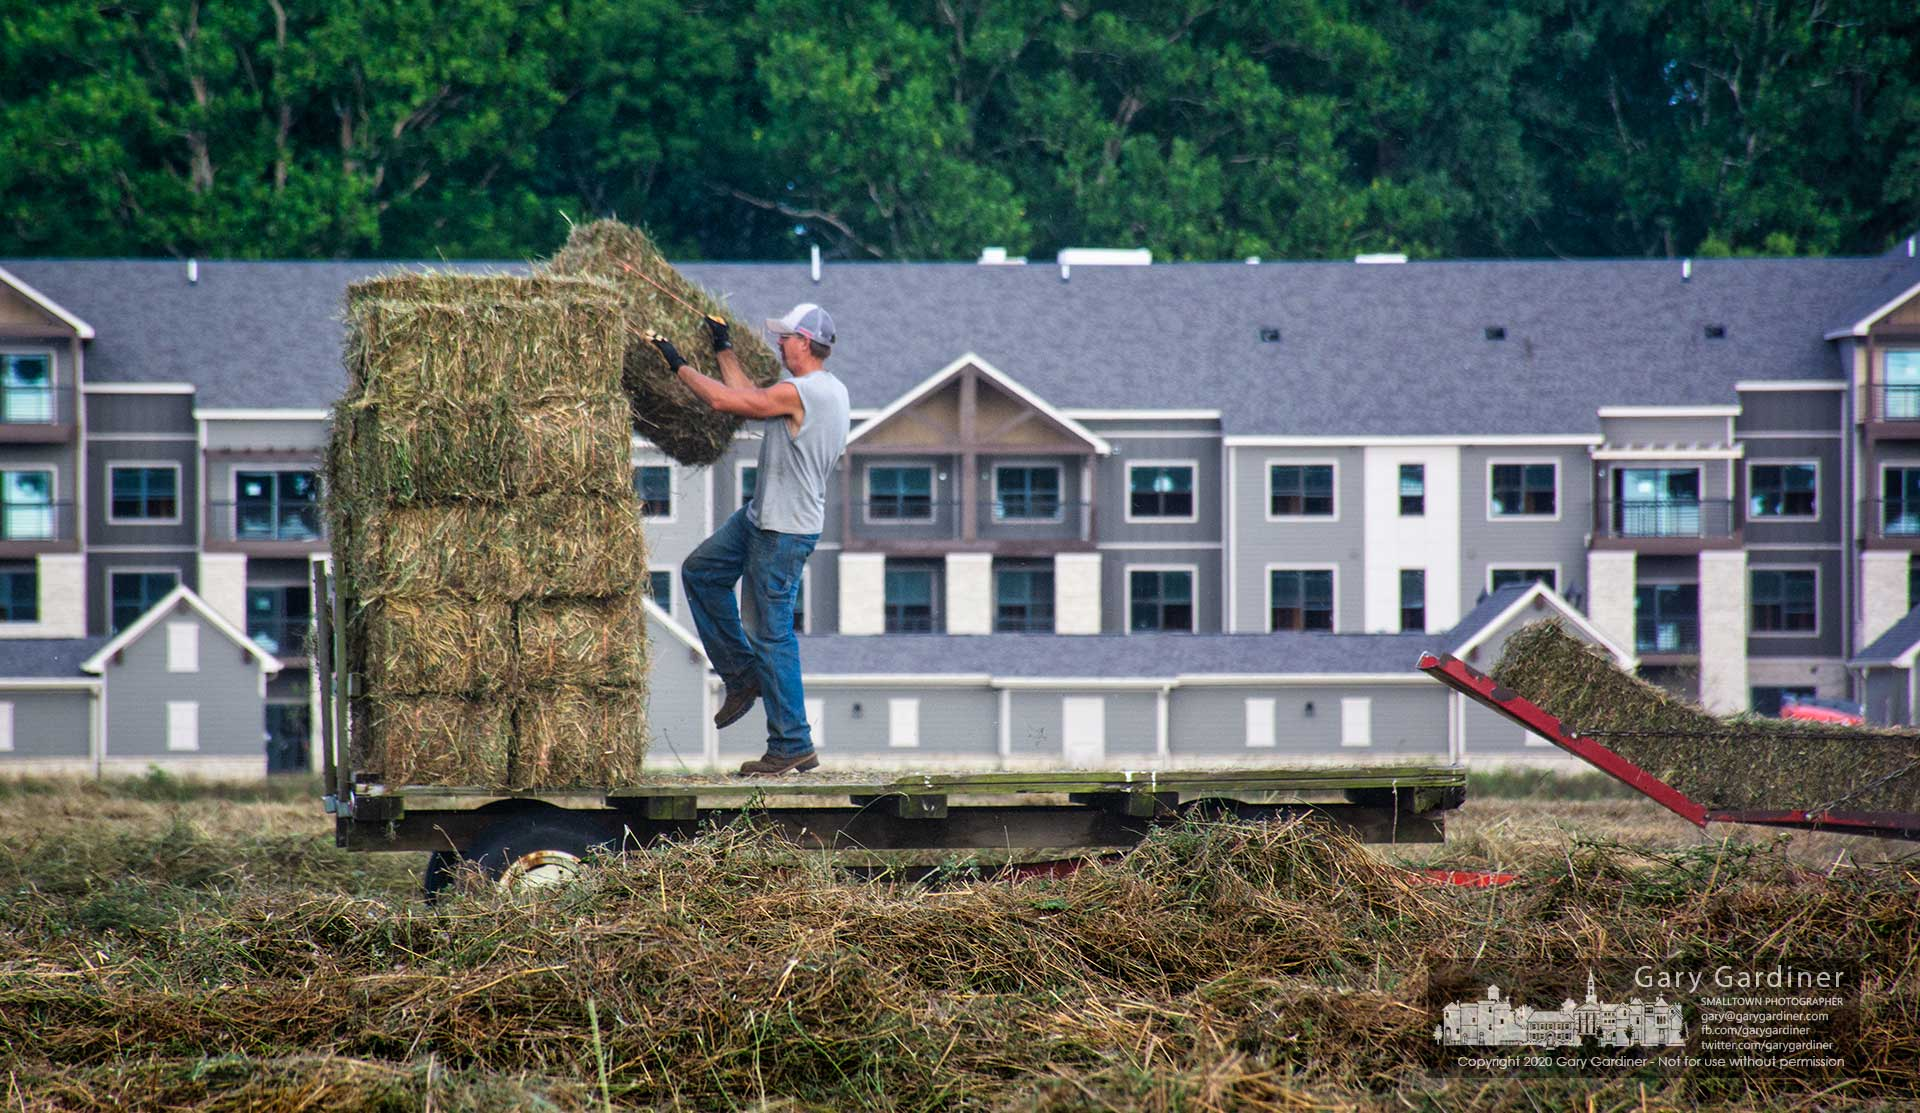 Rodney Parker tosses hay onto a wagon destined for the Otterbein Equestrian Center from the hayfields along Cooper Road at Collegeview. My Final Photo for Aug. 6, 2020.